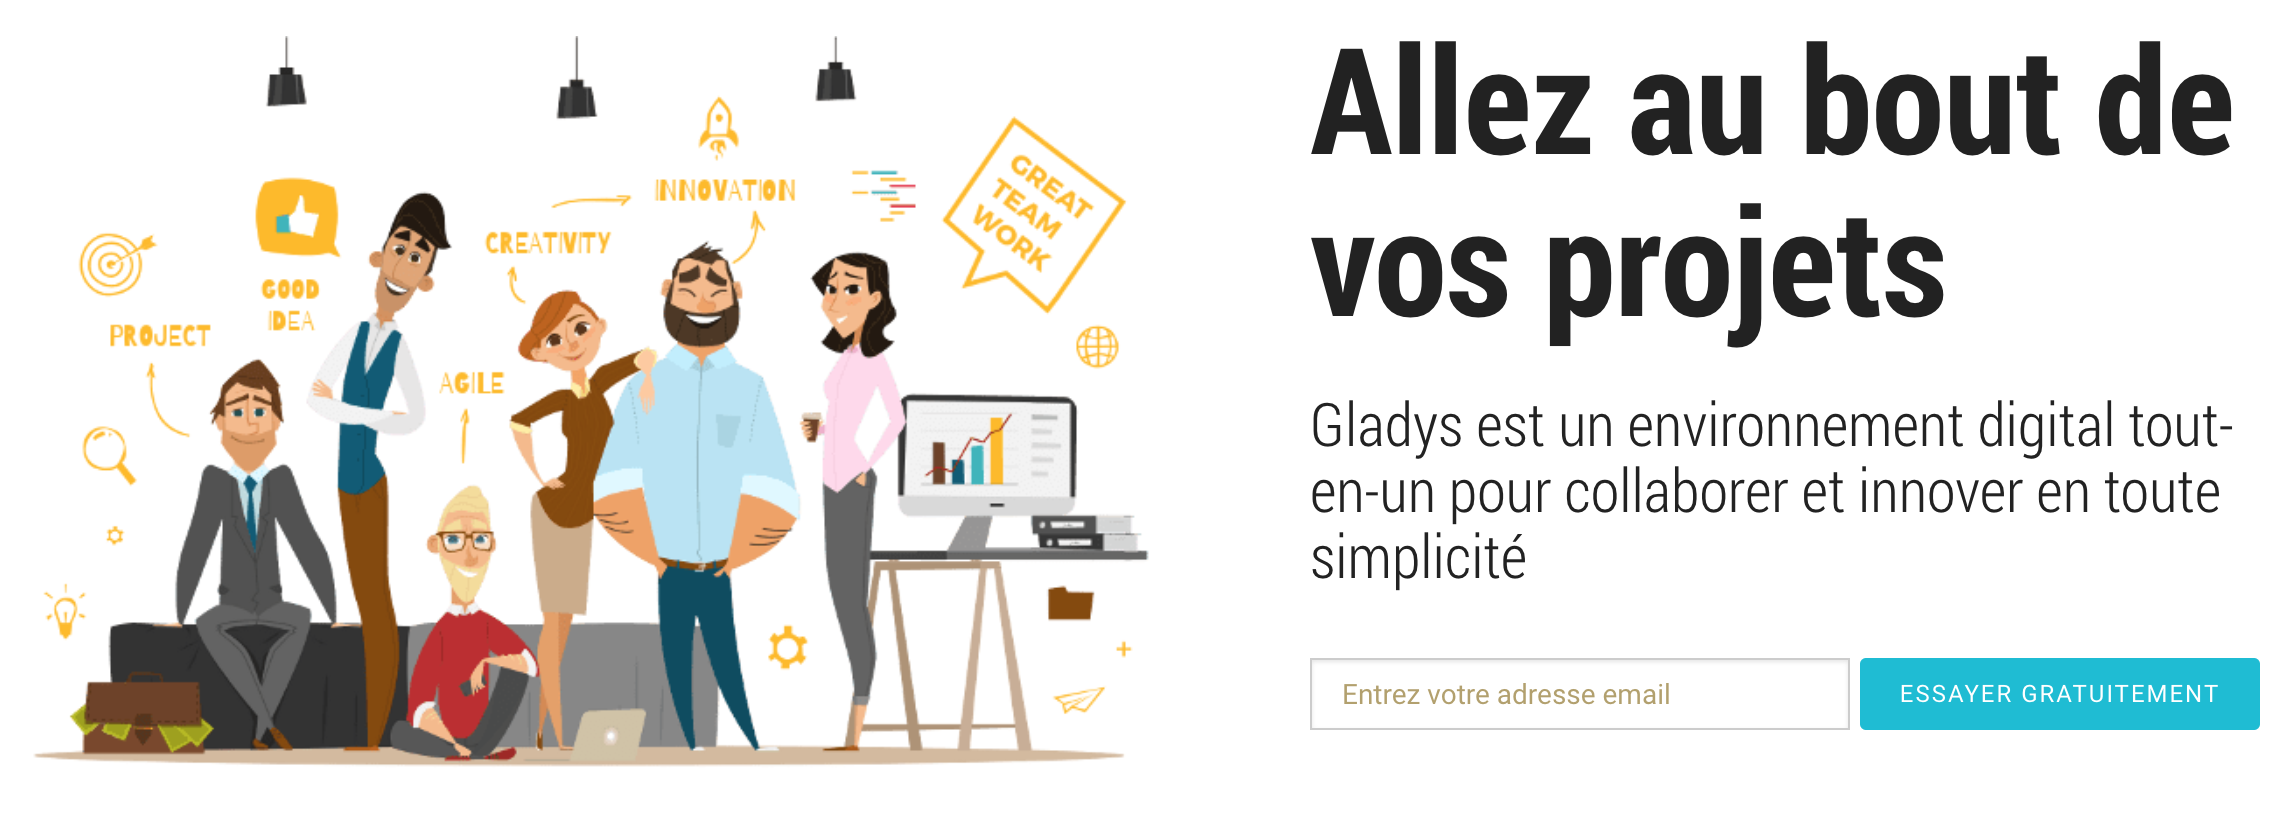 Review Gladys: Boost project management efficiency and efficacy - Appvizer